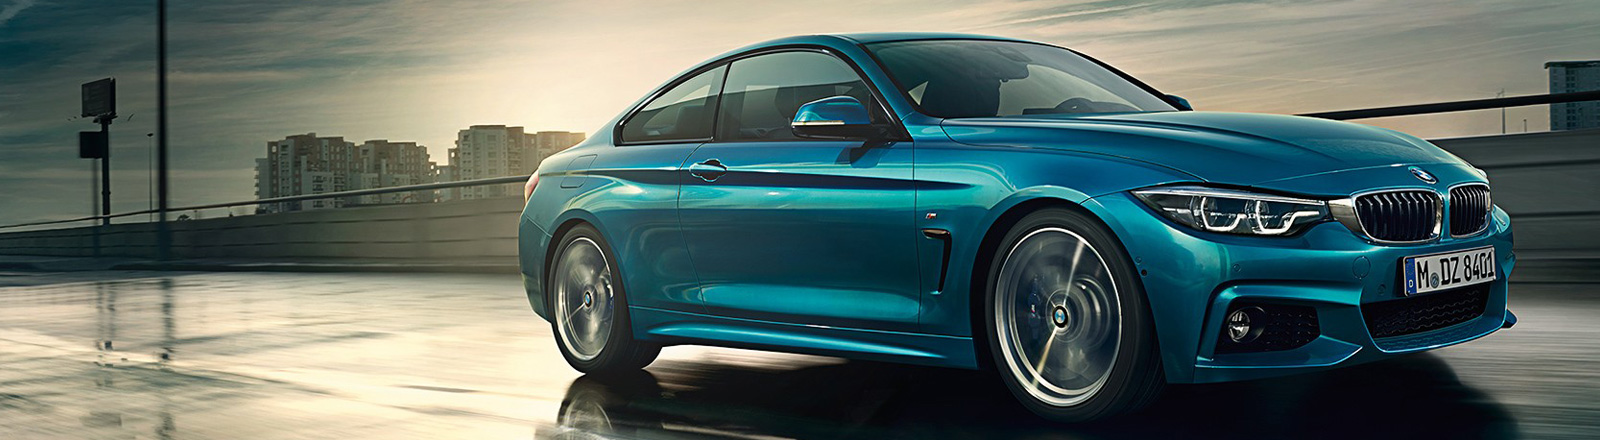 Explore The Brand New Bmw 4 Series In St John S